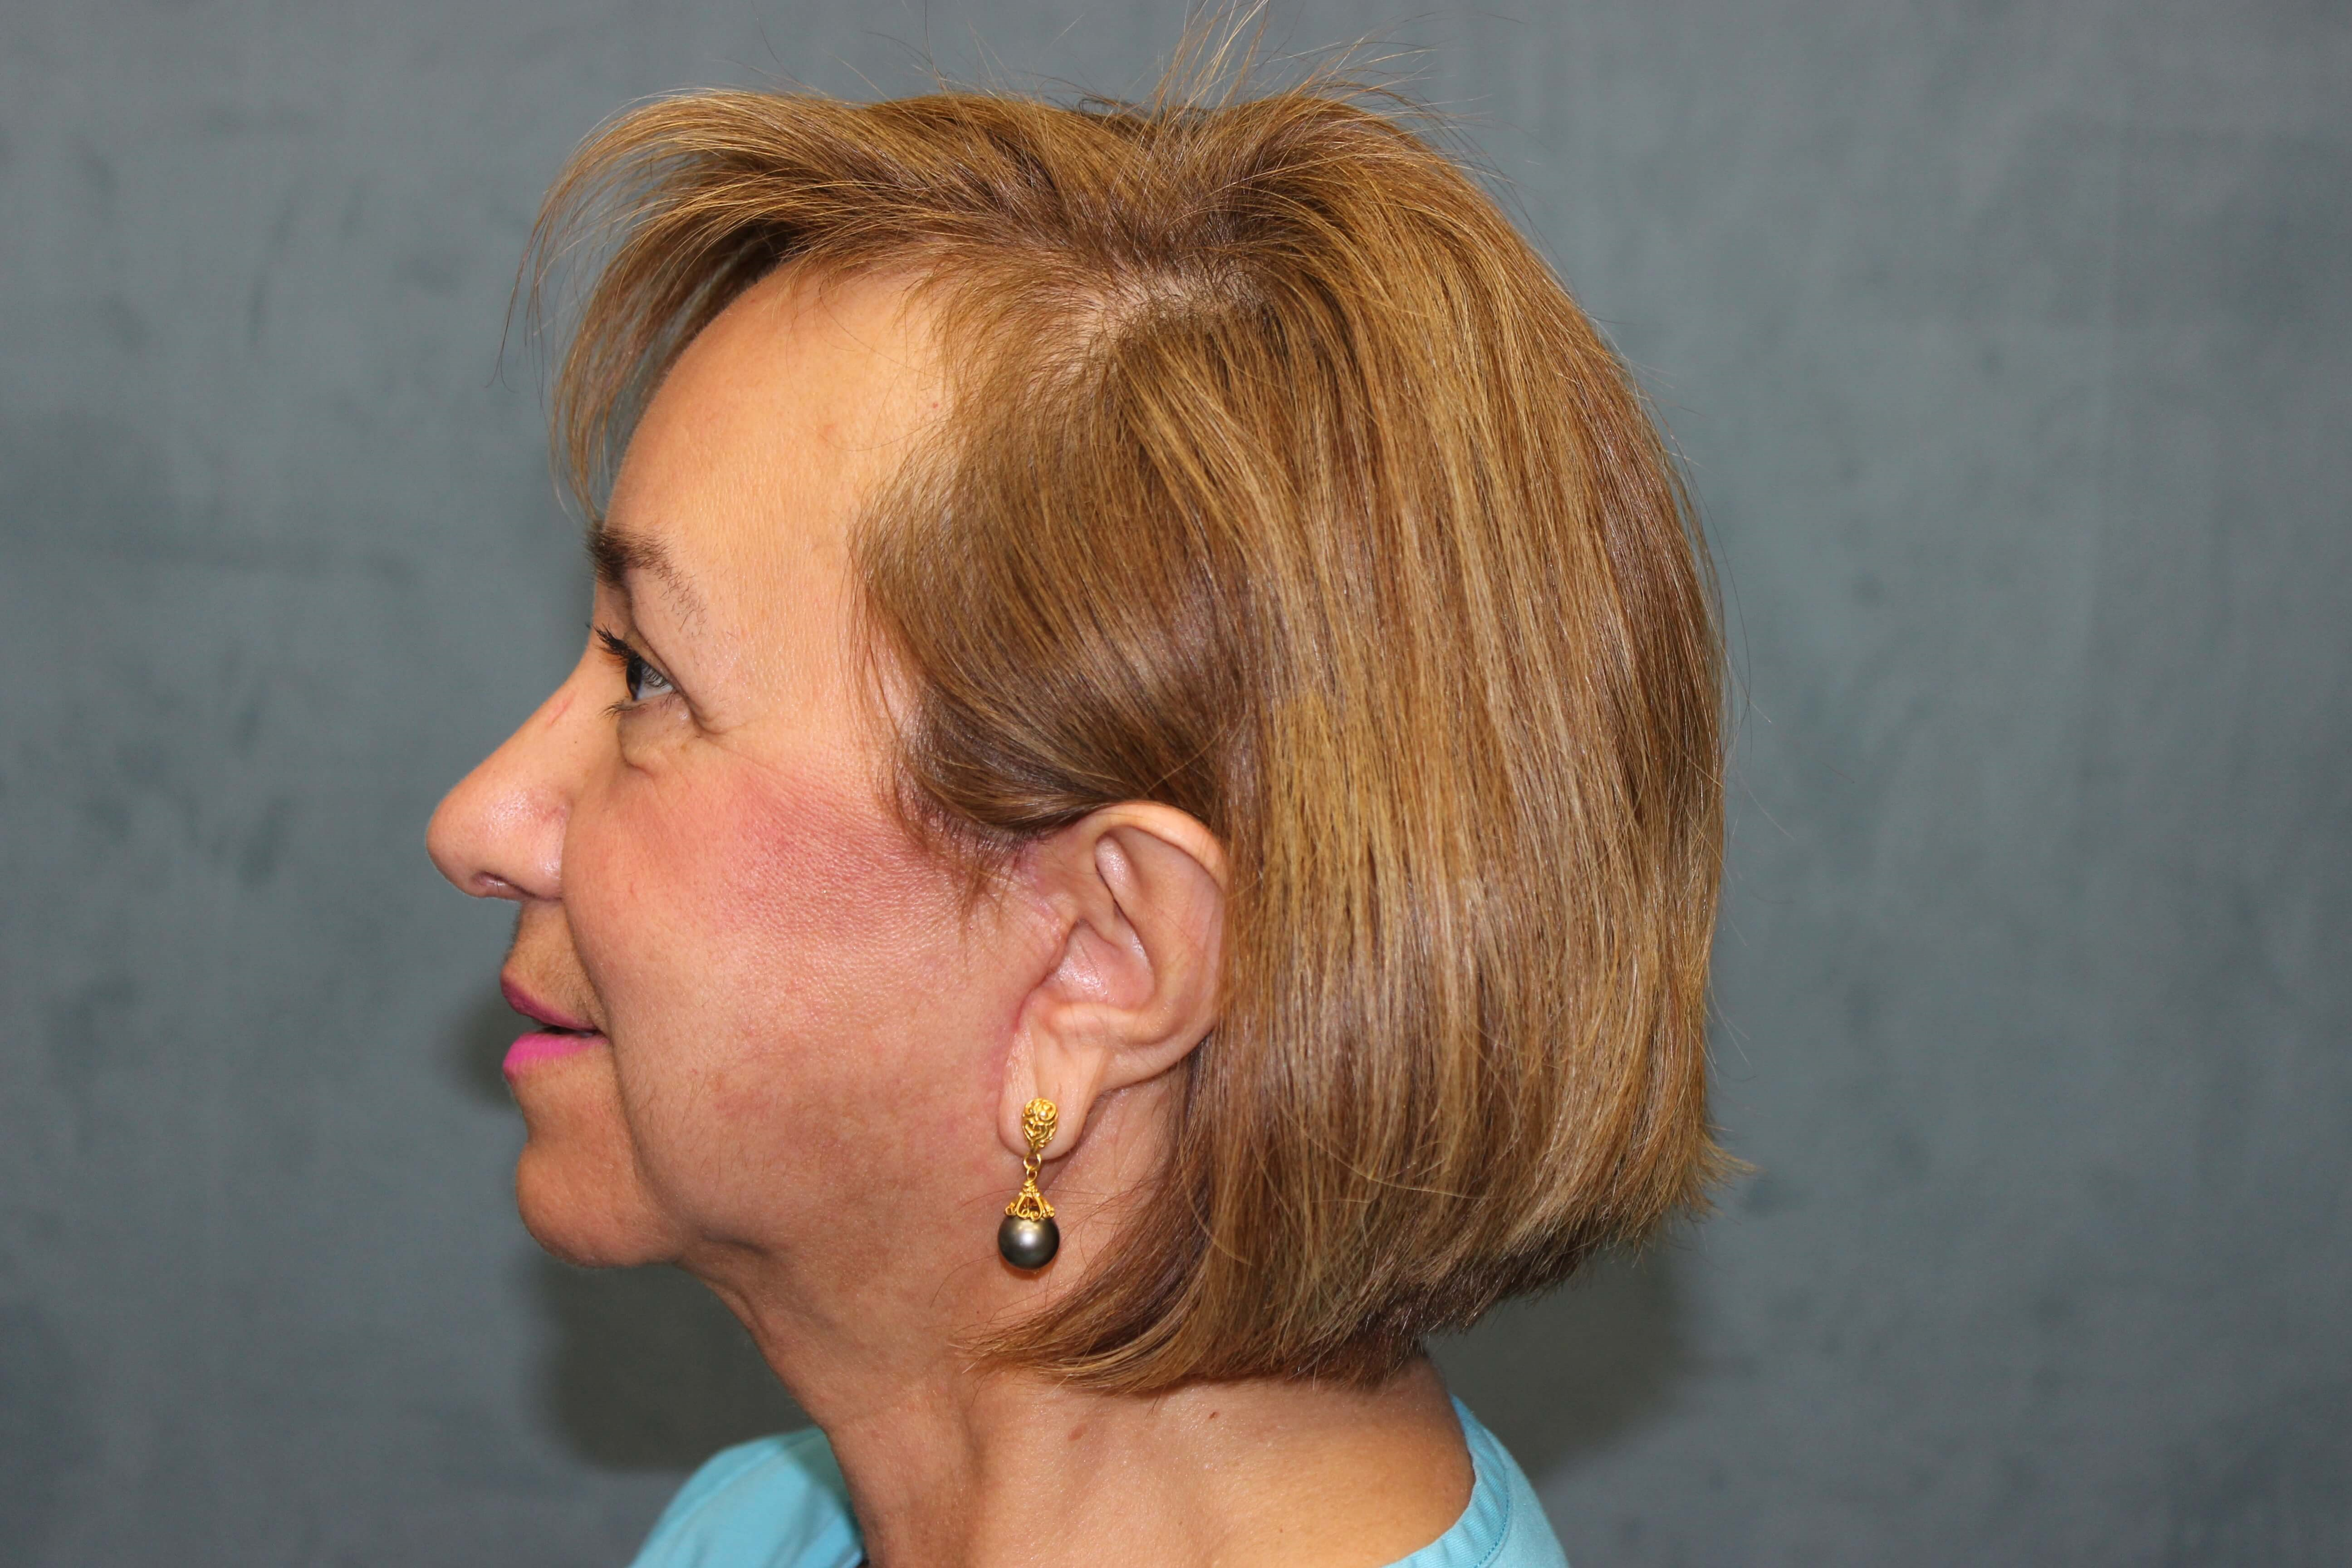 San Diego Eyelid & Facelift After